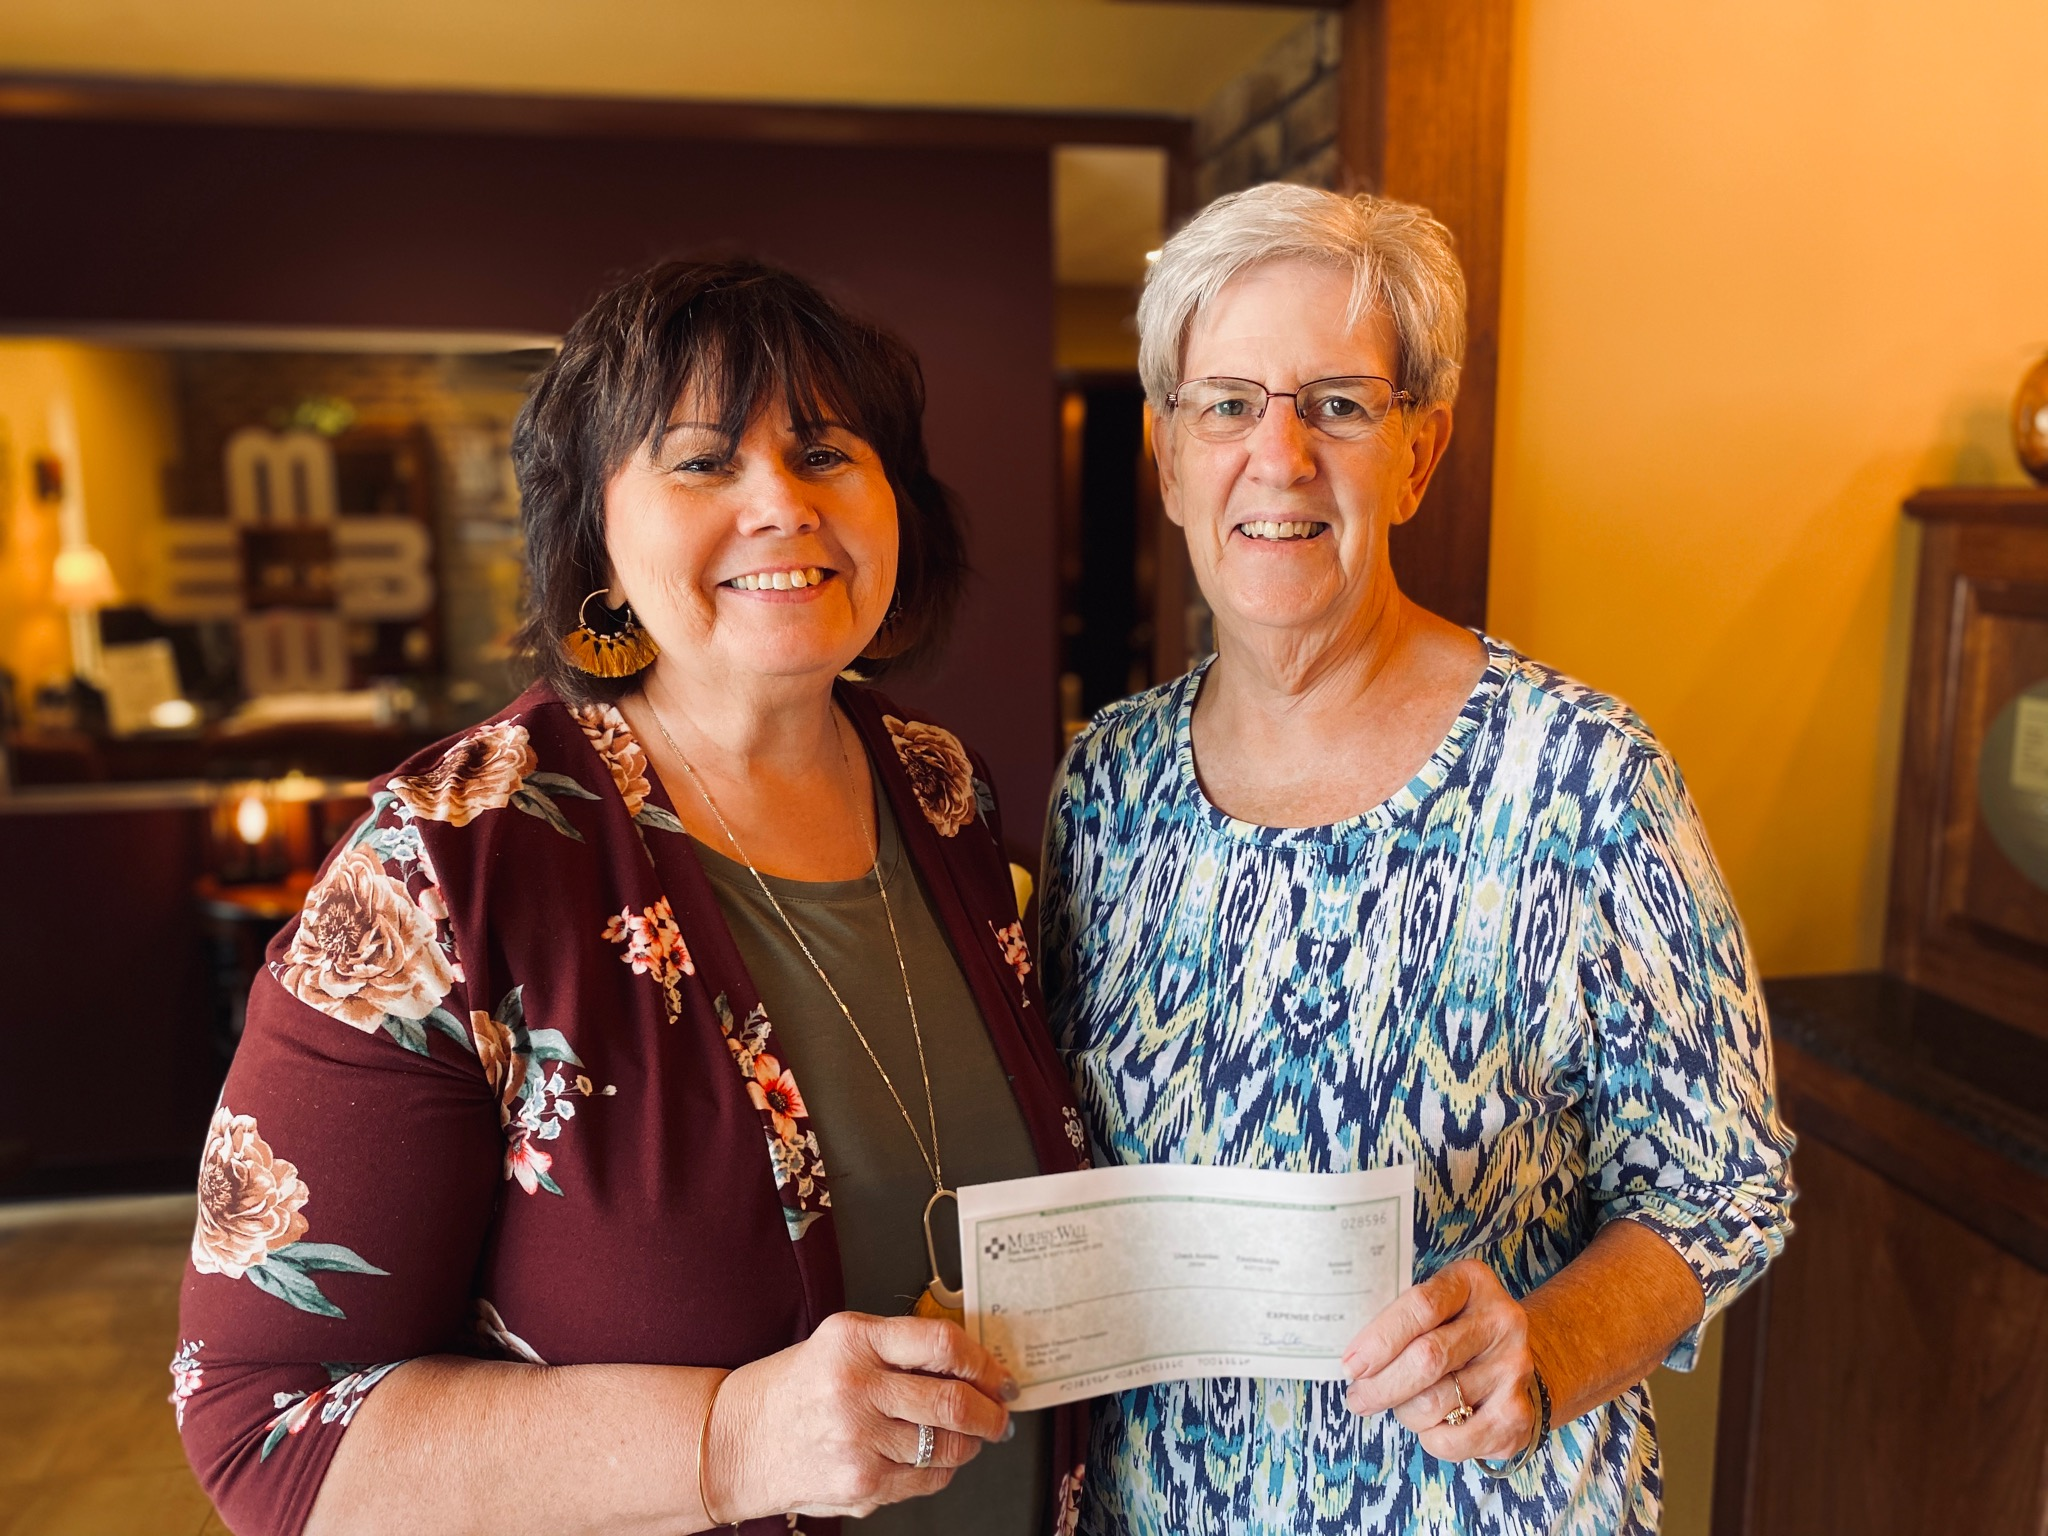 Julie Briley, Elkville Branch Manager, Murphy-Wall State Bank is pictured presenting a donation from the bank for the Elverado Education Foundation's upcoming 5K Walk/Run to Foundation Vice President Wilma Coffer-Westerfield.